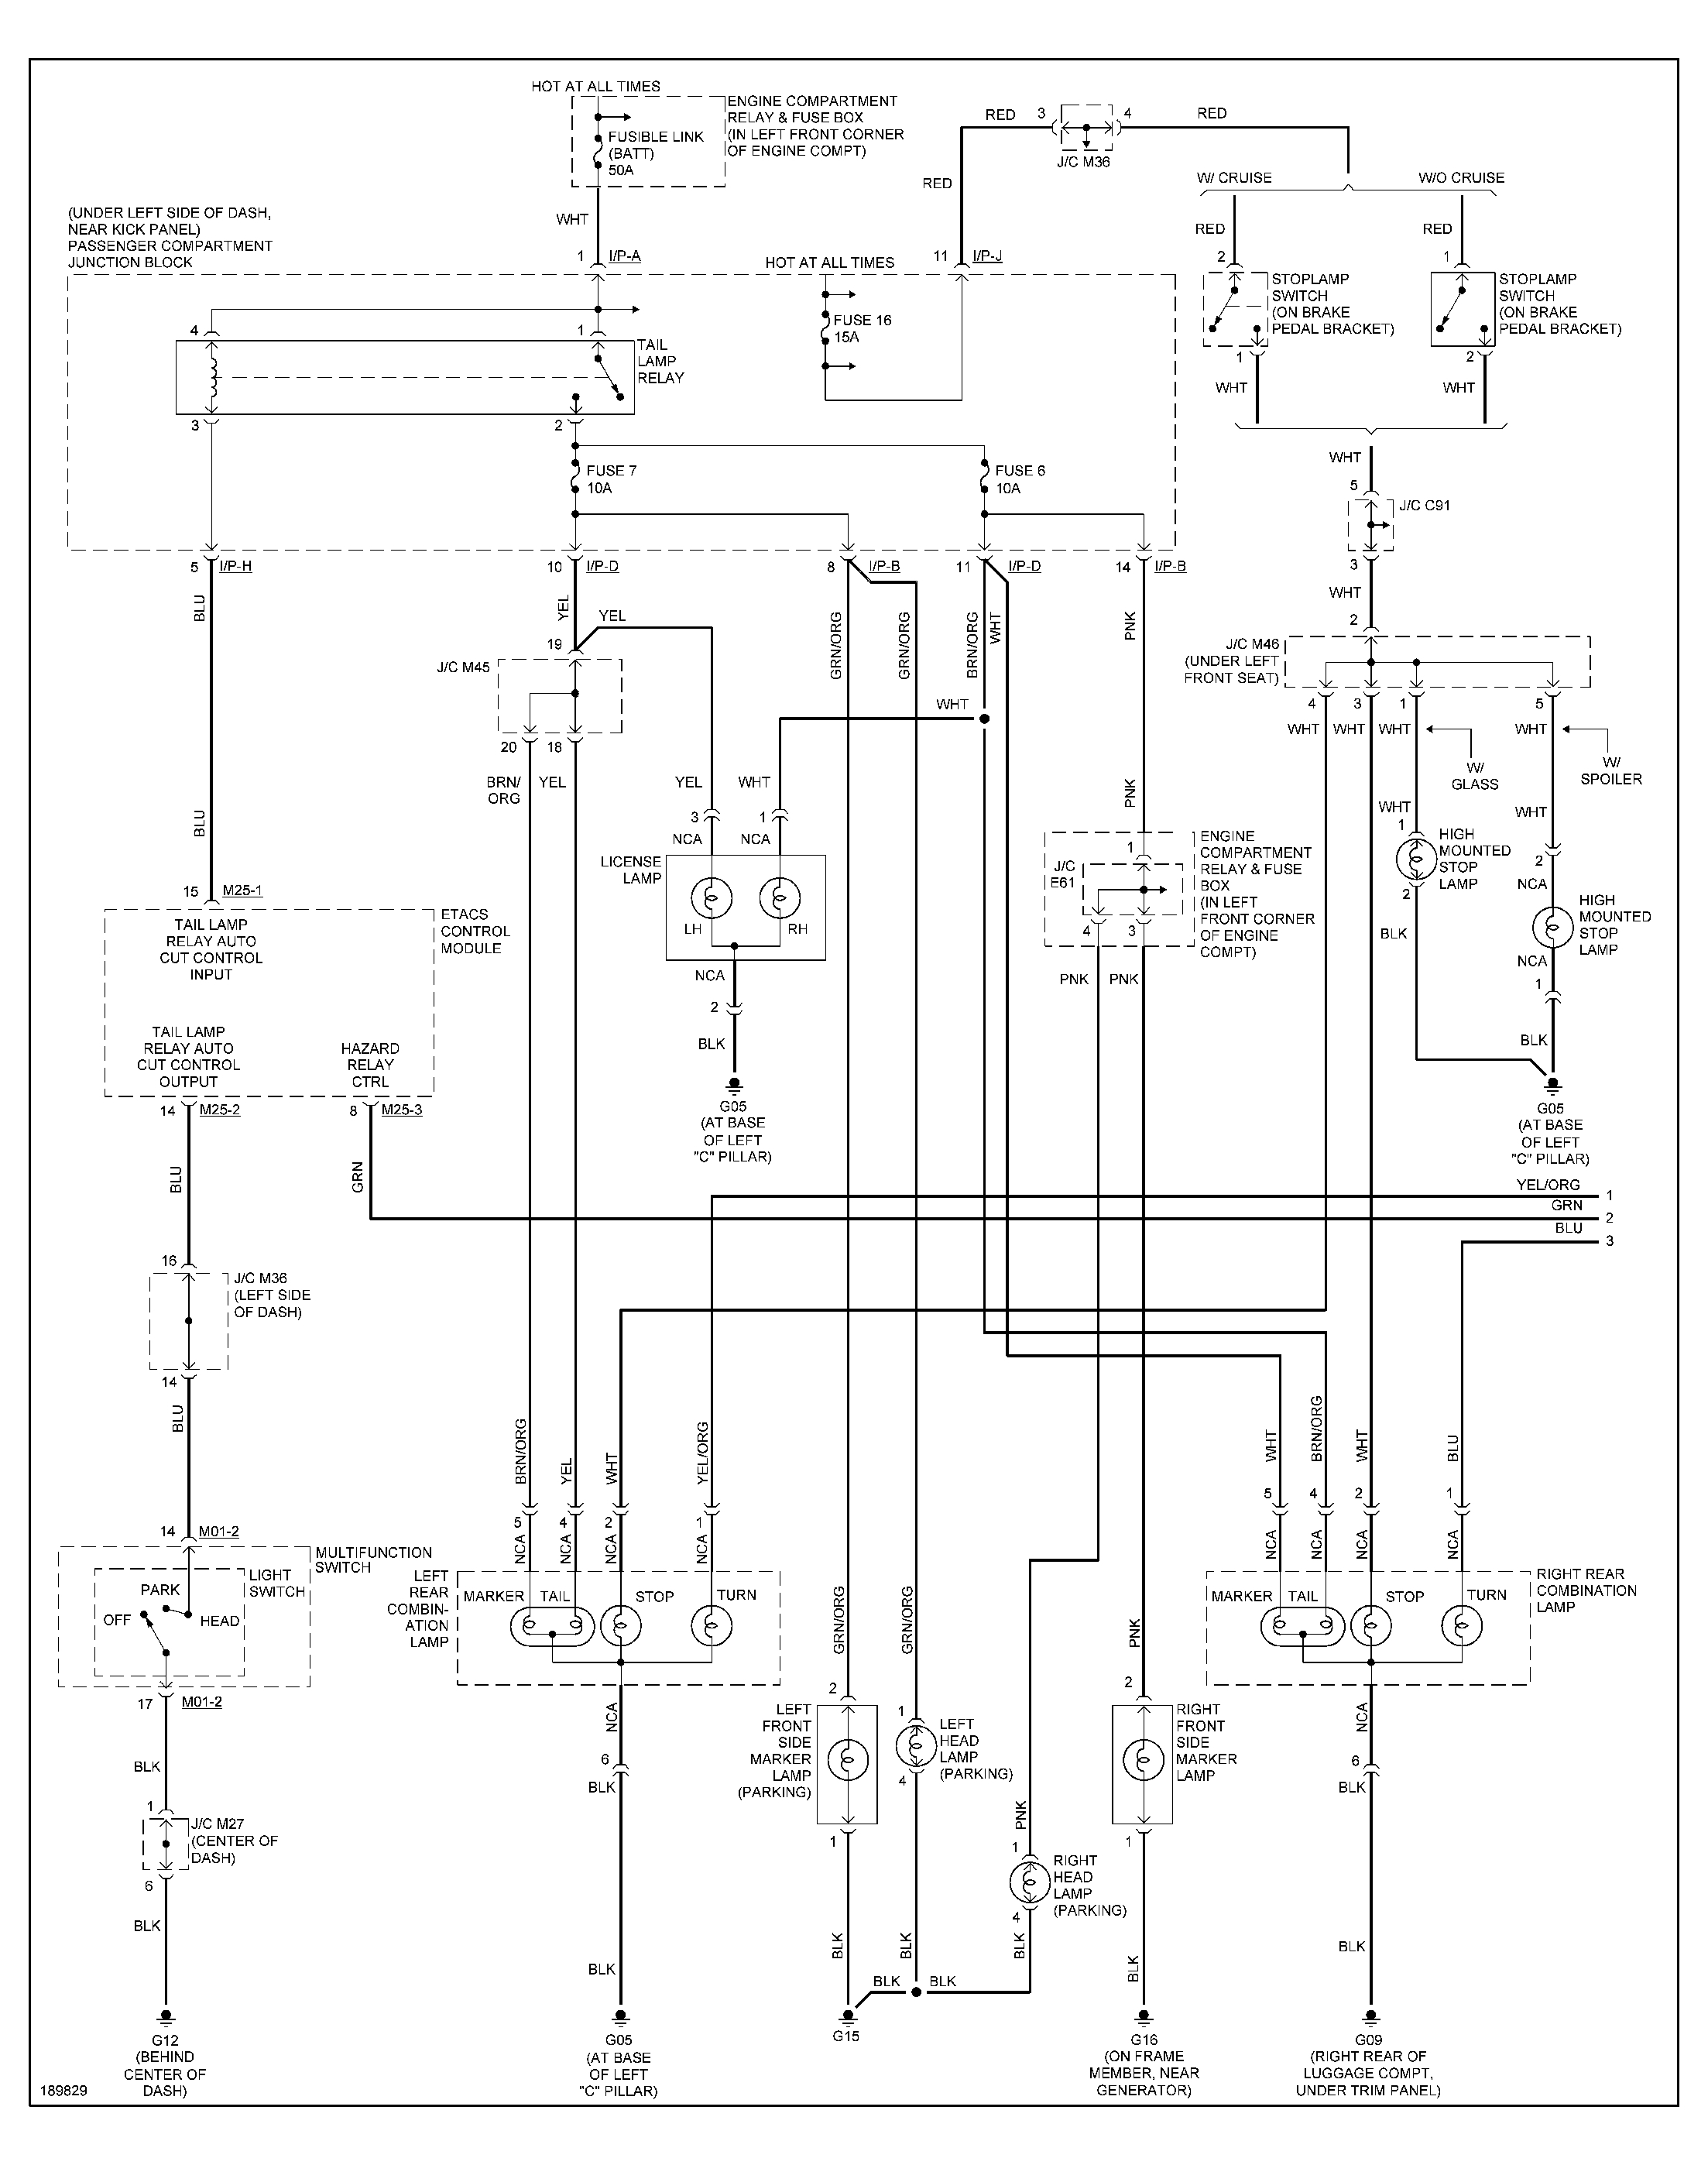 2006 hyundai sonata radio wiring diagram | free wiring diagram wiring diagram for 2006 hyundai sonata wiring diagram 2006 hyundai sonata